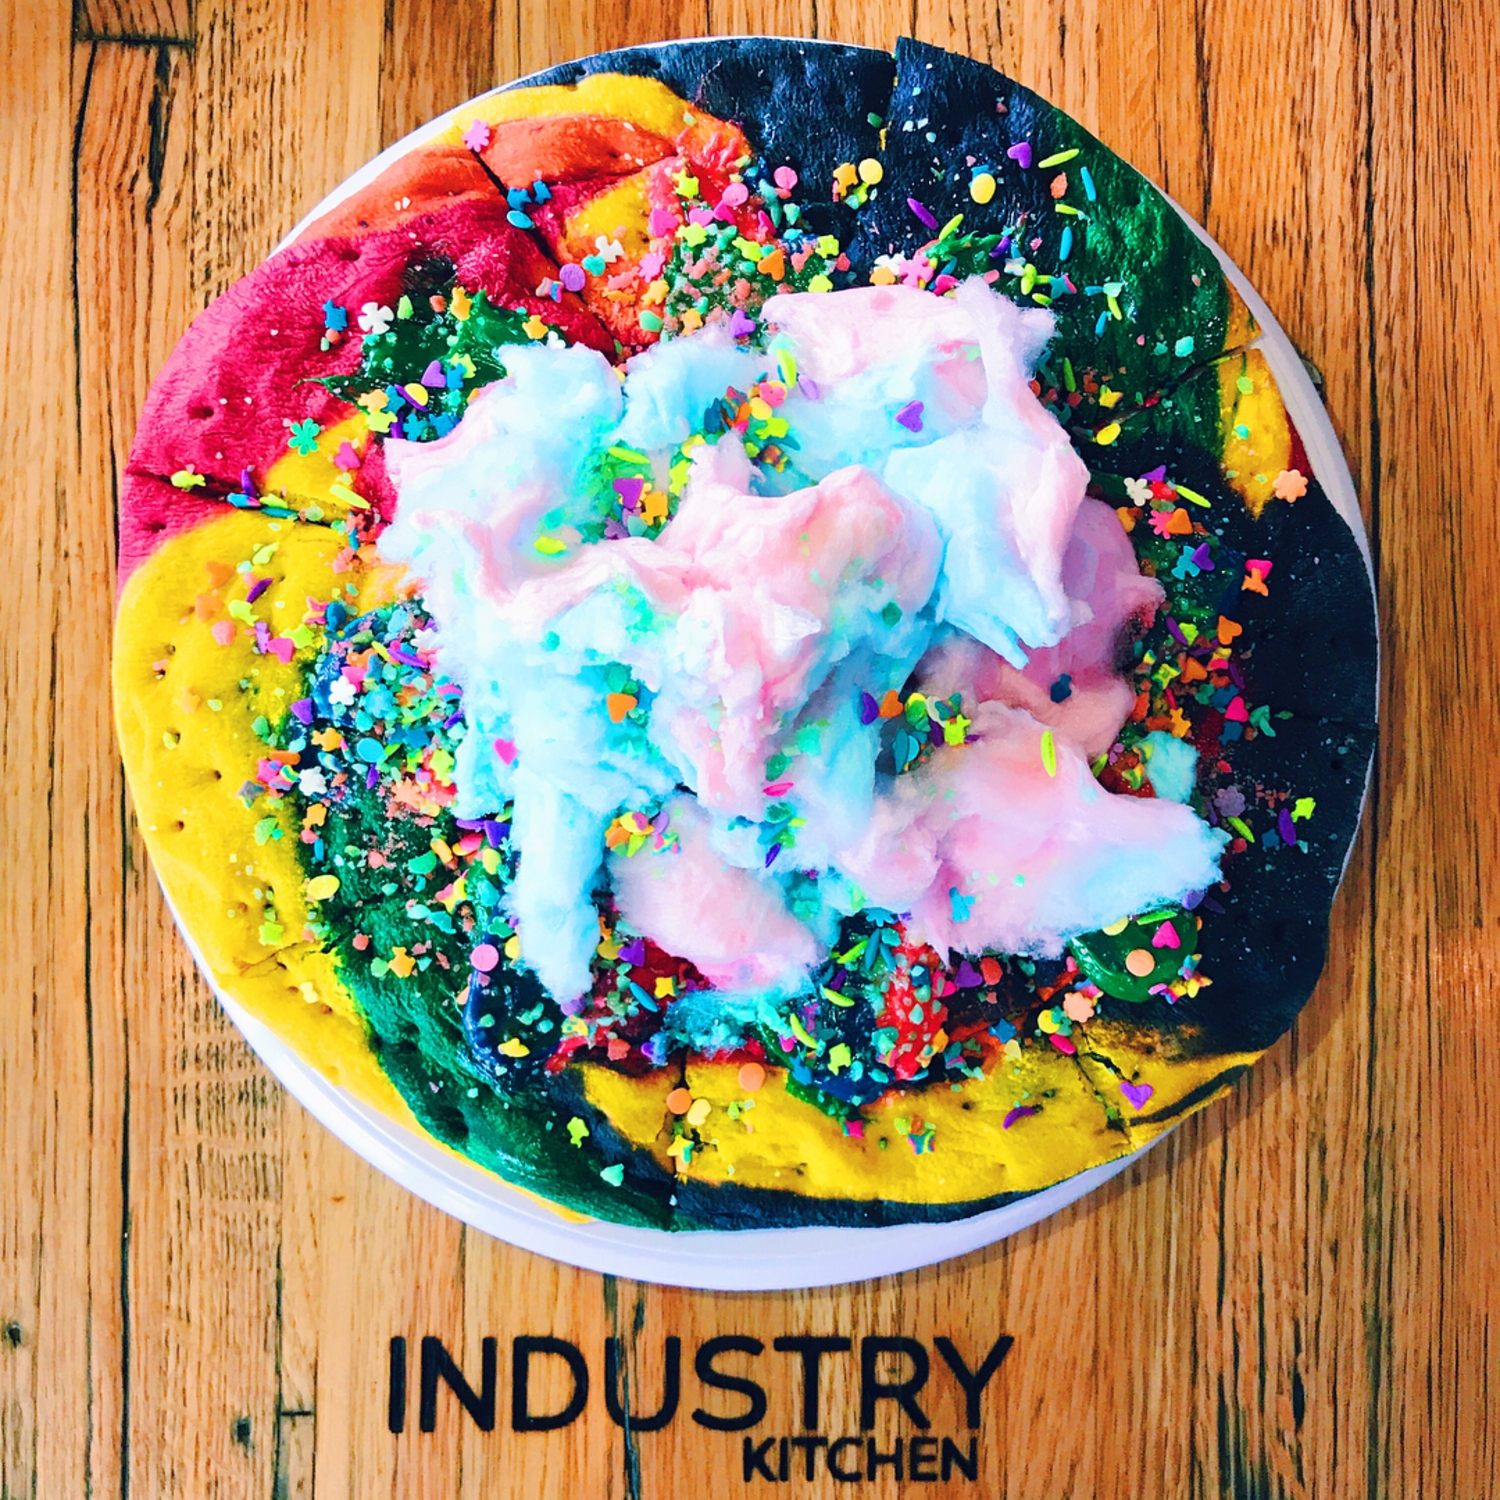 Unicorn pizza exists and it's basically a giant sugar cookie covered in fluffy cotton candy ✨🍕🦄 #cosmobites